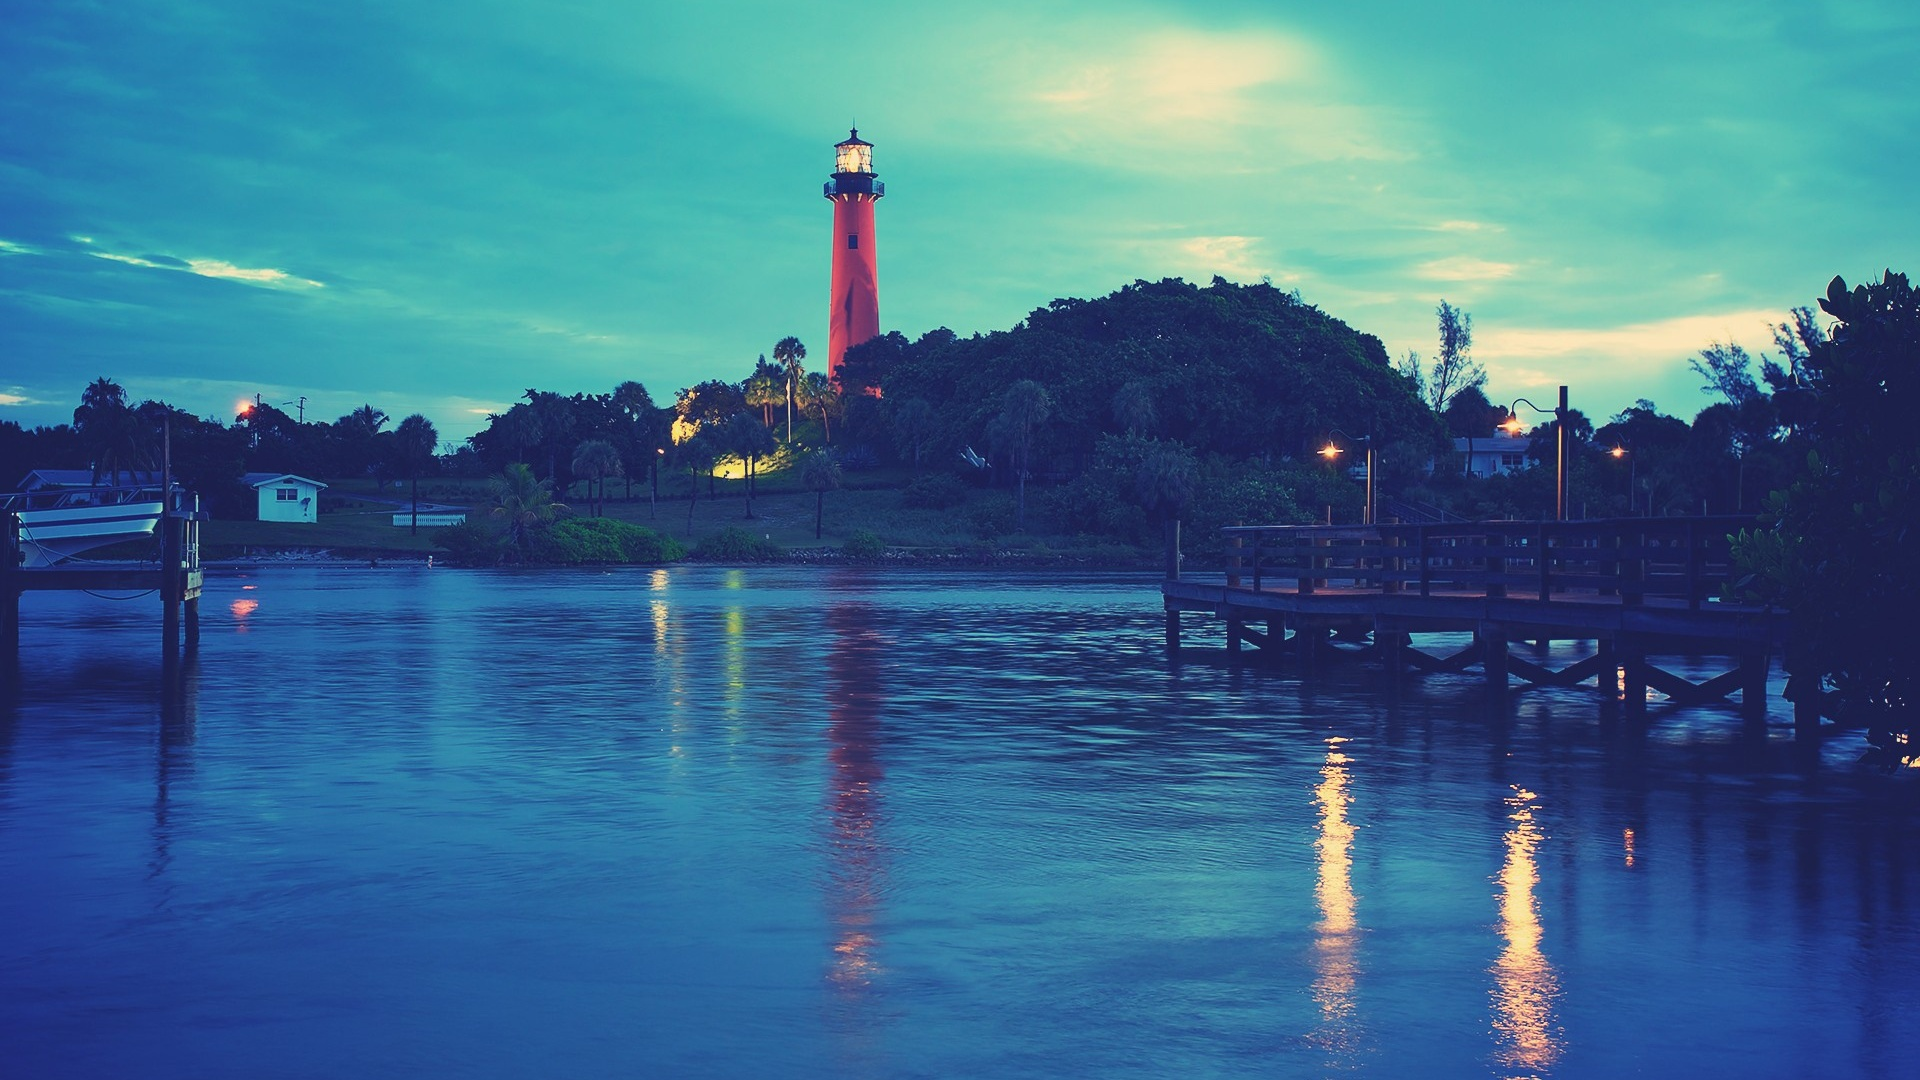 1920x1080 Hd Wallpapers For Your Desktop: 1920x1080 Lighthouse At Twilight Desktop PC And Mac Wallpaper